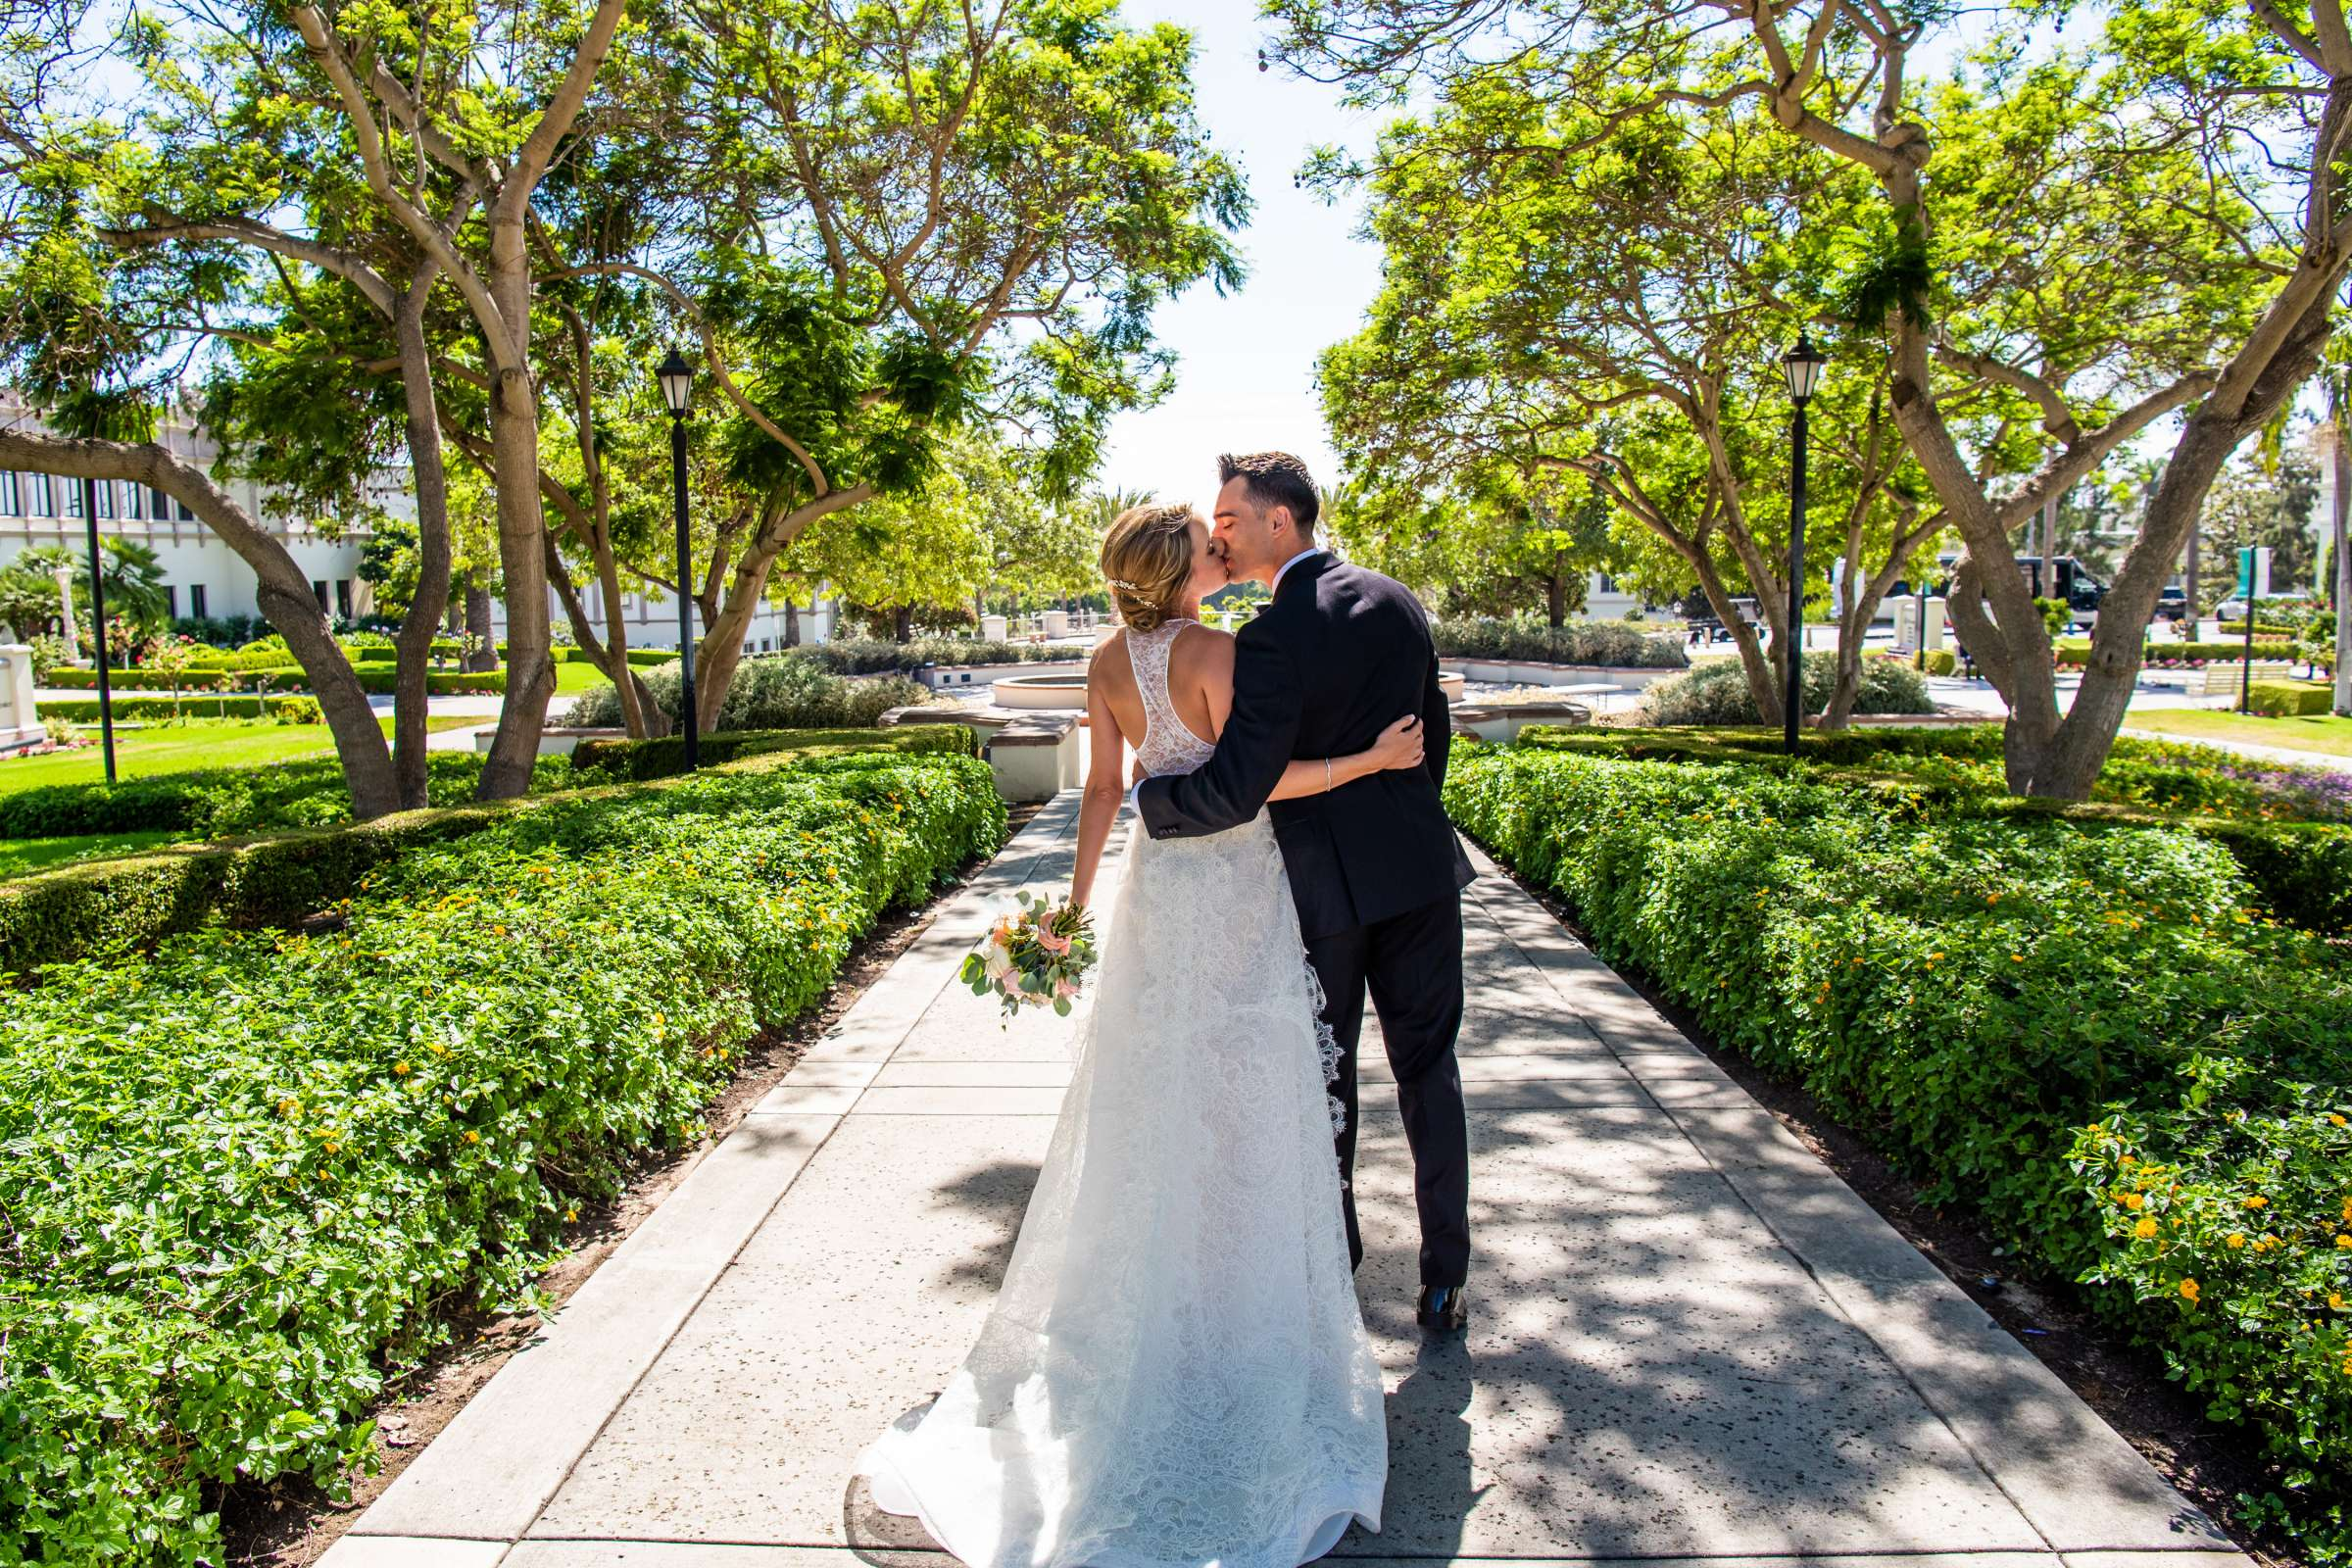 The Prado Wedding coordinated by Bliss Events, Sara and Marvin Wedding Photo #559561 by True Photography